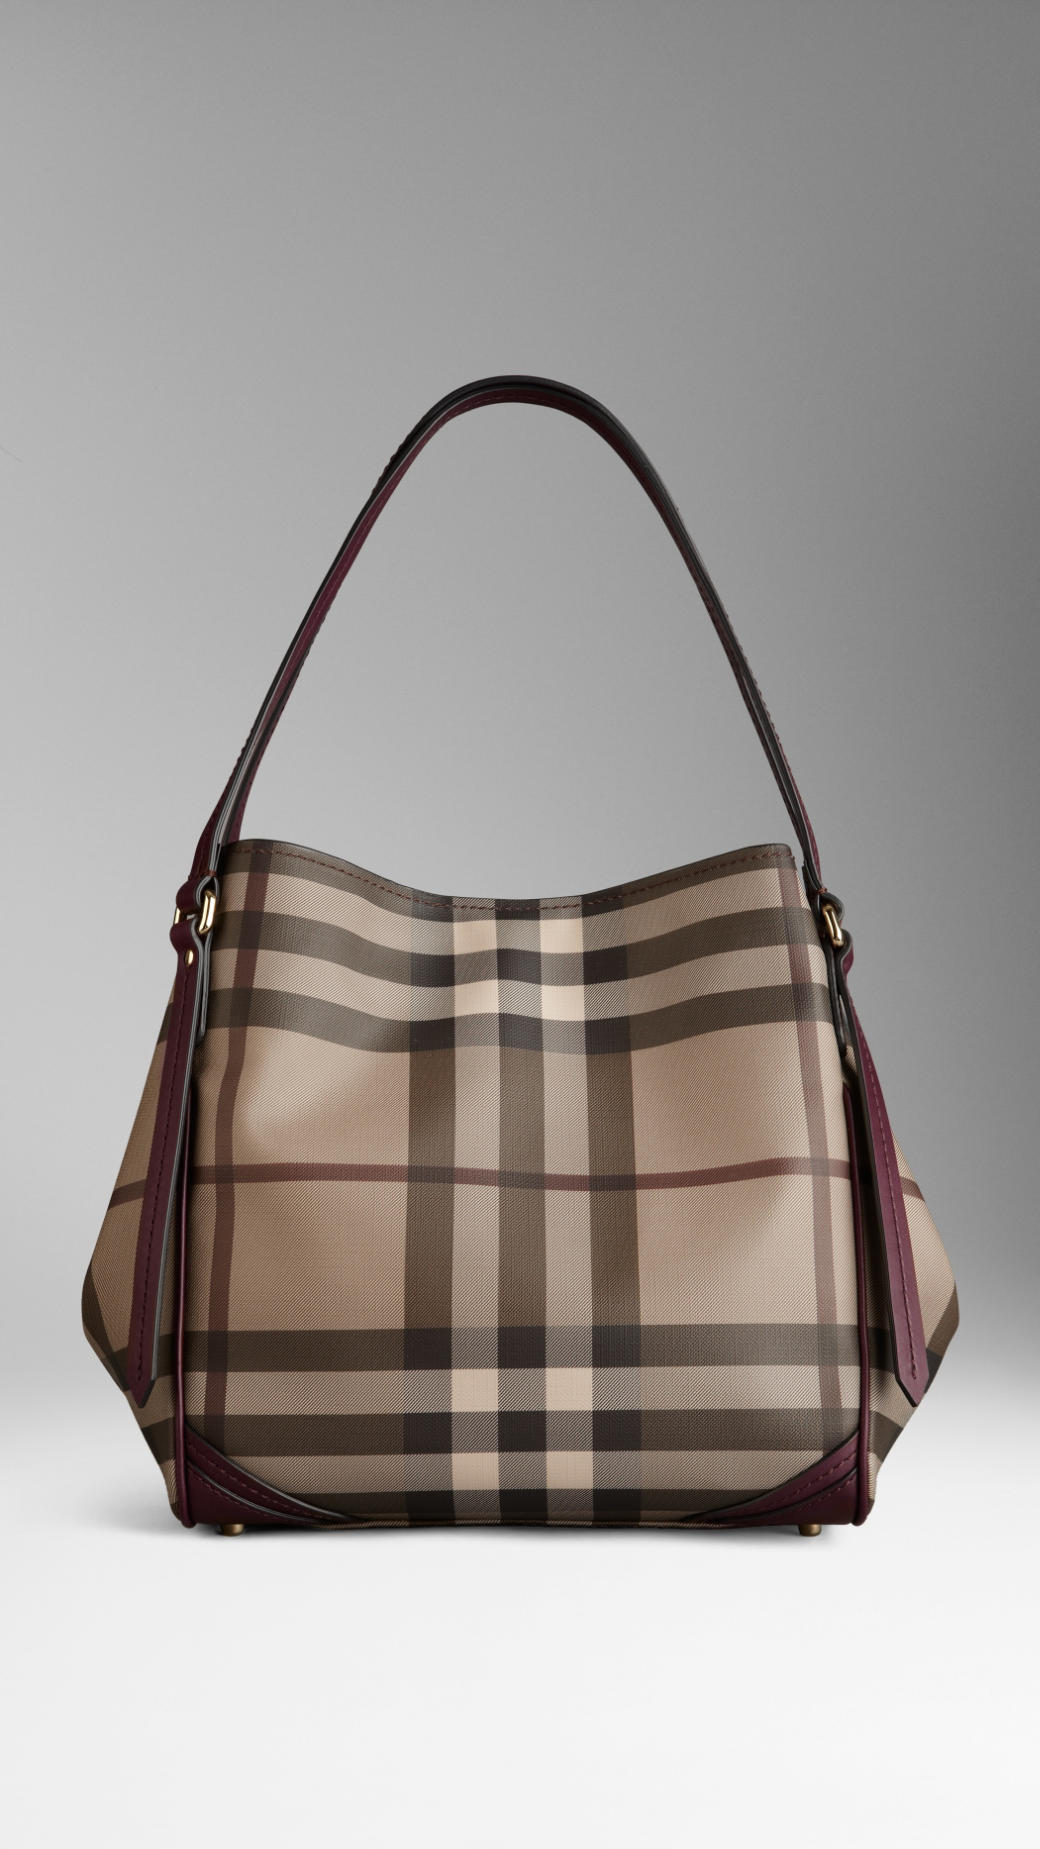 acb8fed7fa29 Keeping Burberry Small Bags   Lyst burberry small smoked check saddlestitch tote  bag